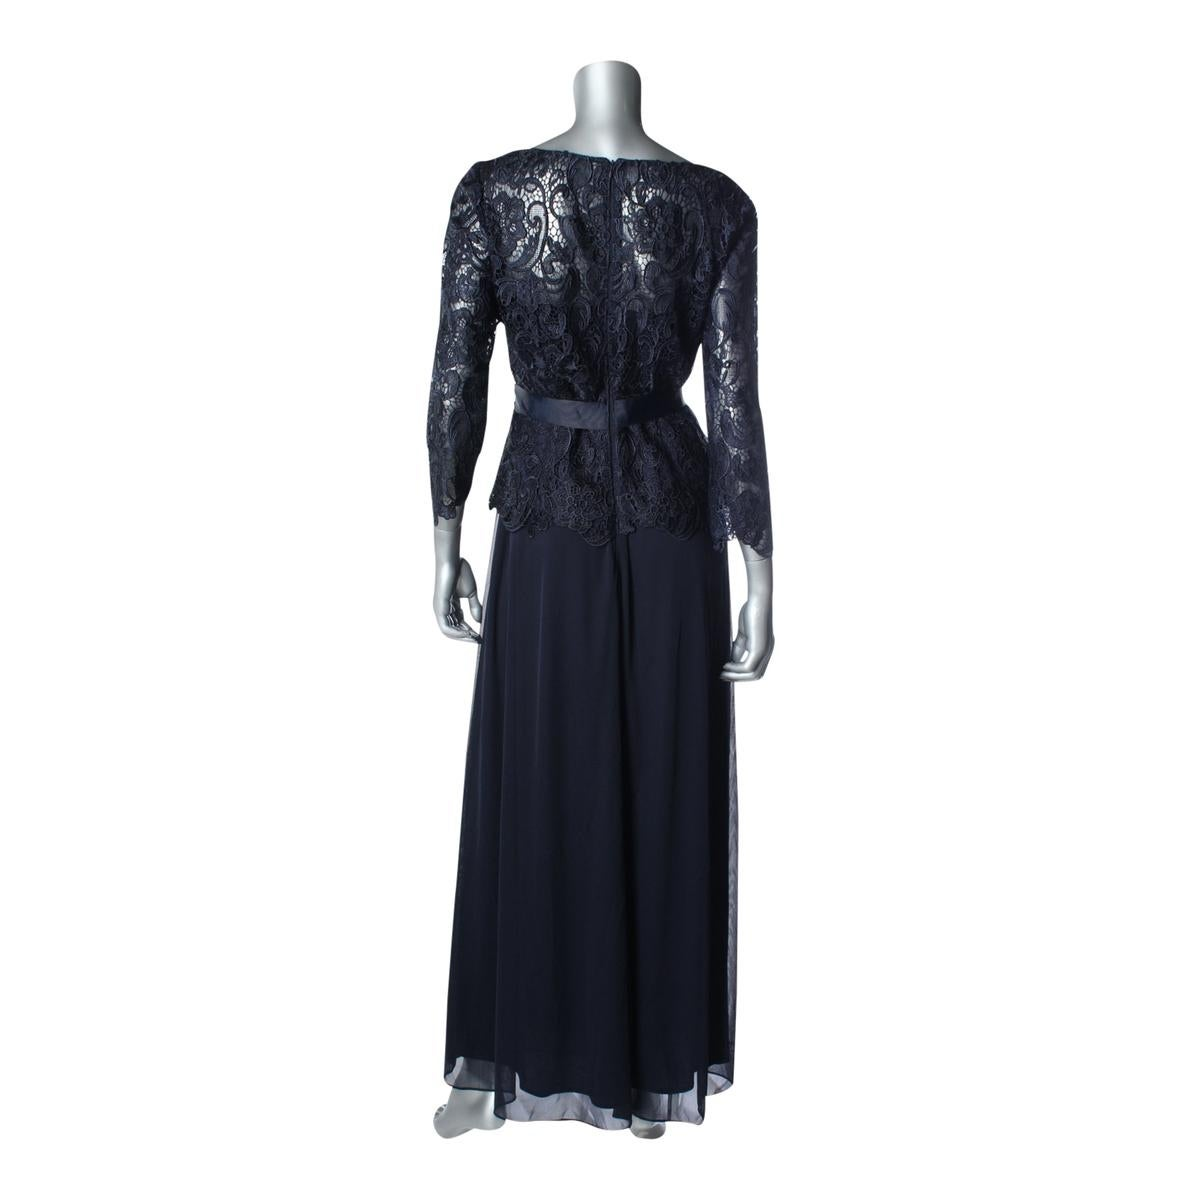 3750cef86ee Shop Patra Womens Mother of the Bride Dress Lace 3 4 Sleeves - Free  Shipping Today - Overstock - 14052357